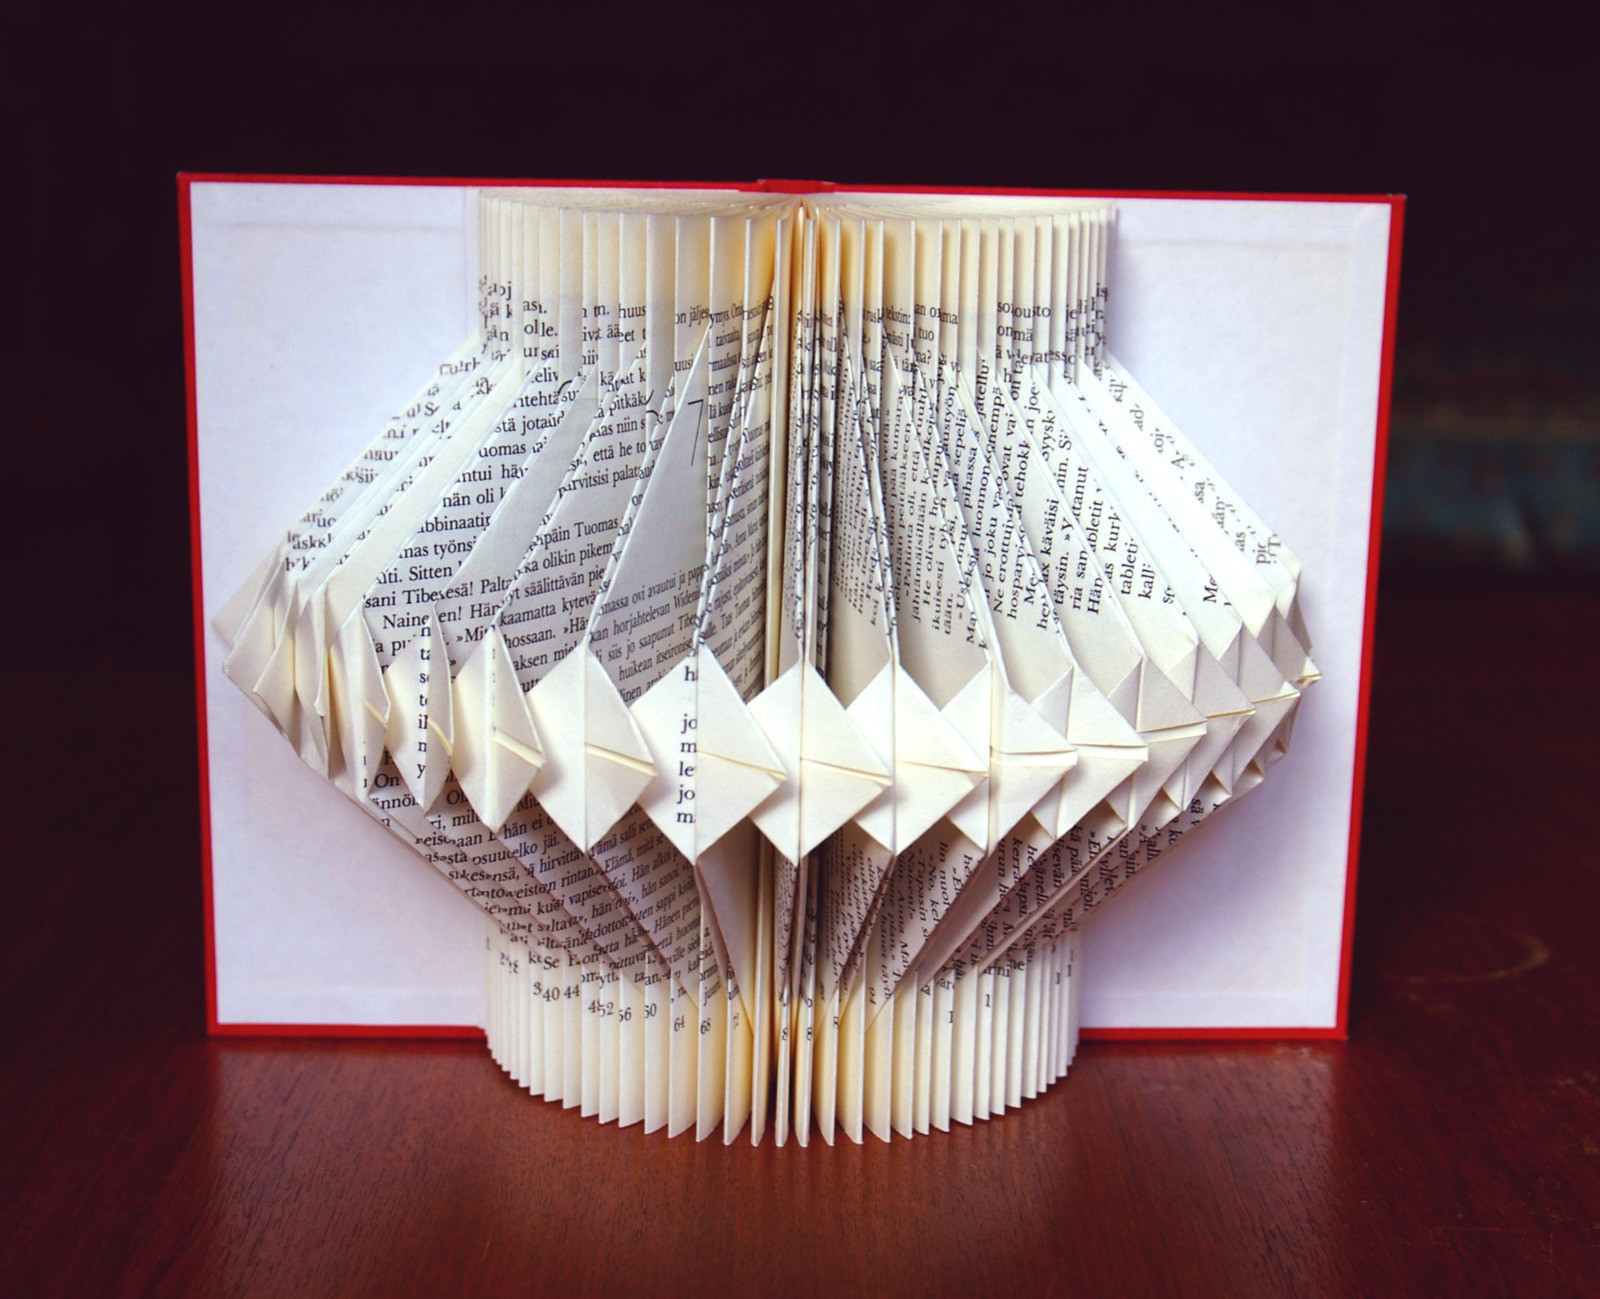 Book Decorative Item A Piece Of Book Art Papercraft And Paper Folding On Cut Out Keep